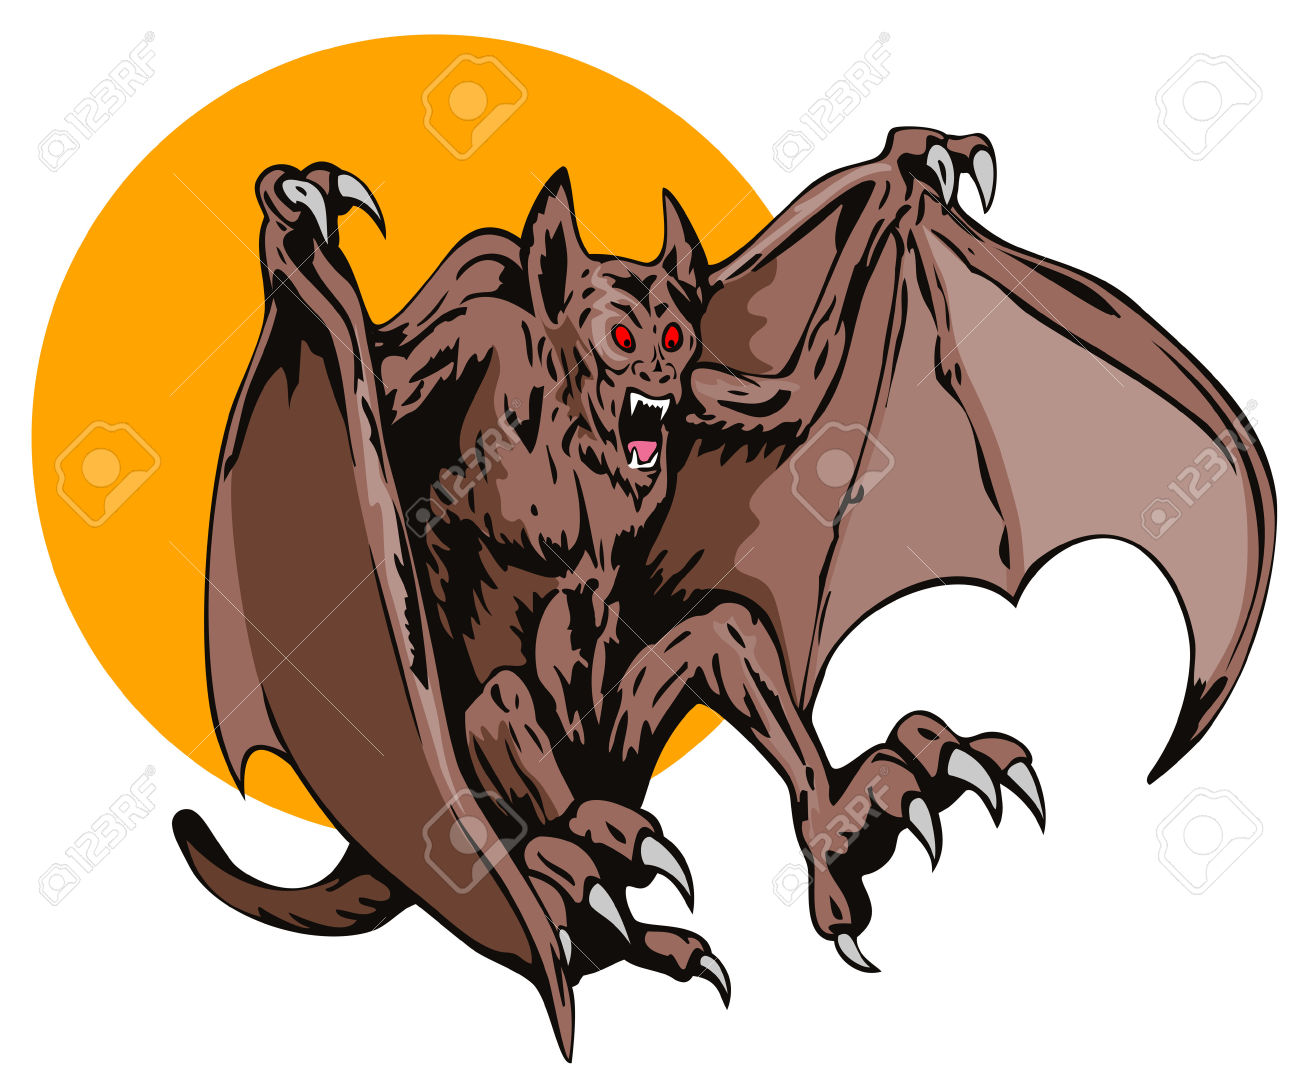 Blood Thirsty Flying Creature Swooping Down Royalty Free Cliparts.